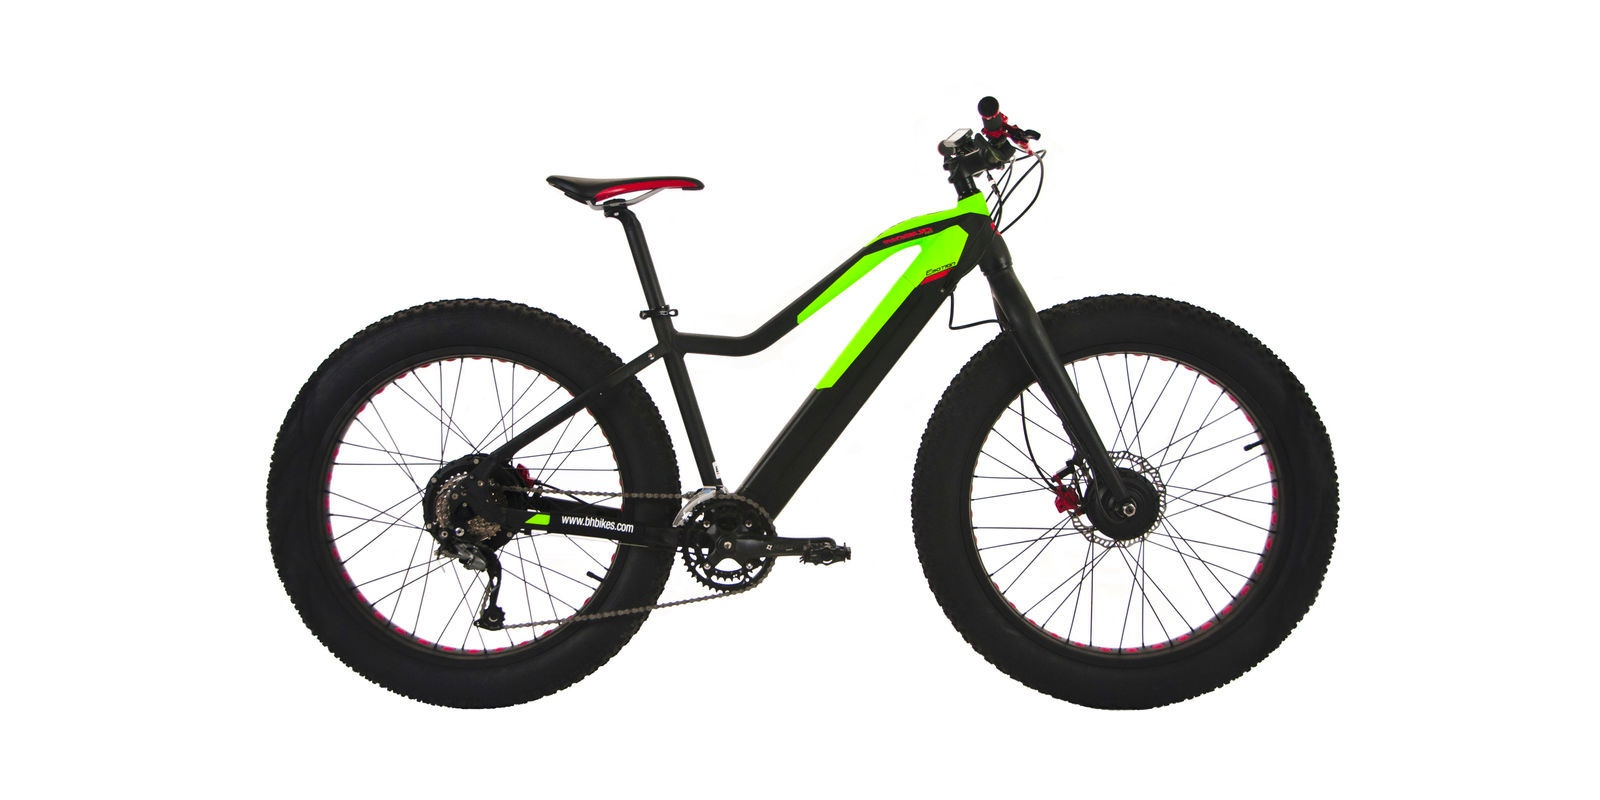 All Wheel Drive Electric Bicycles Double The Motors Fun